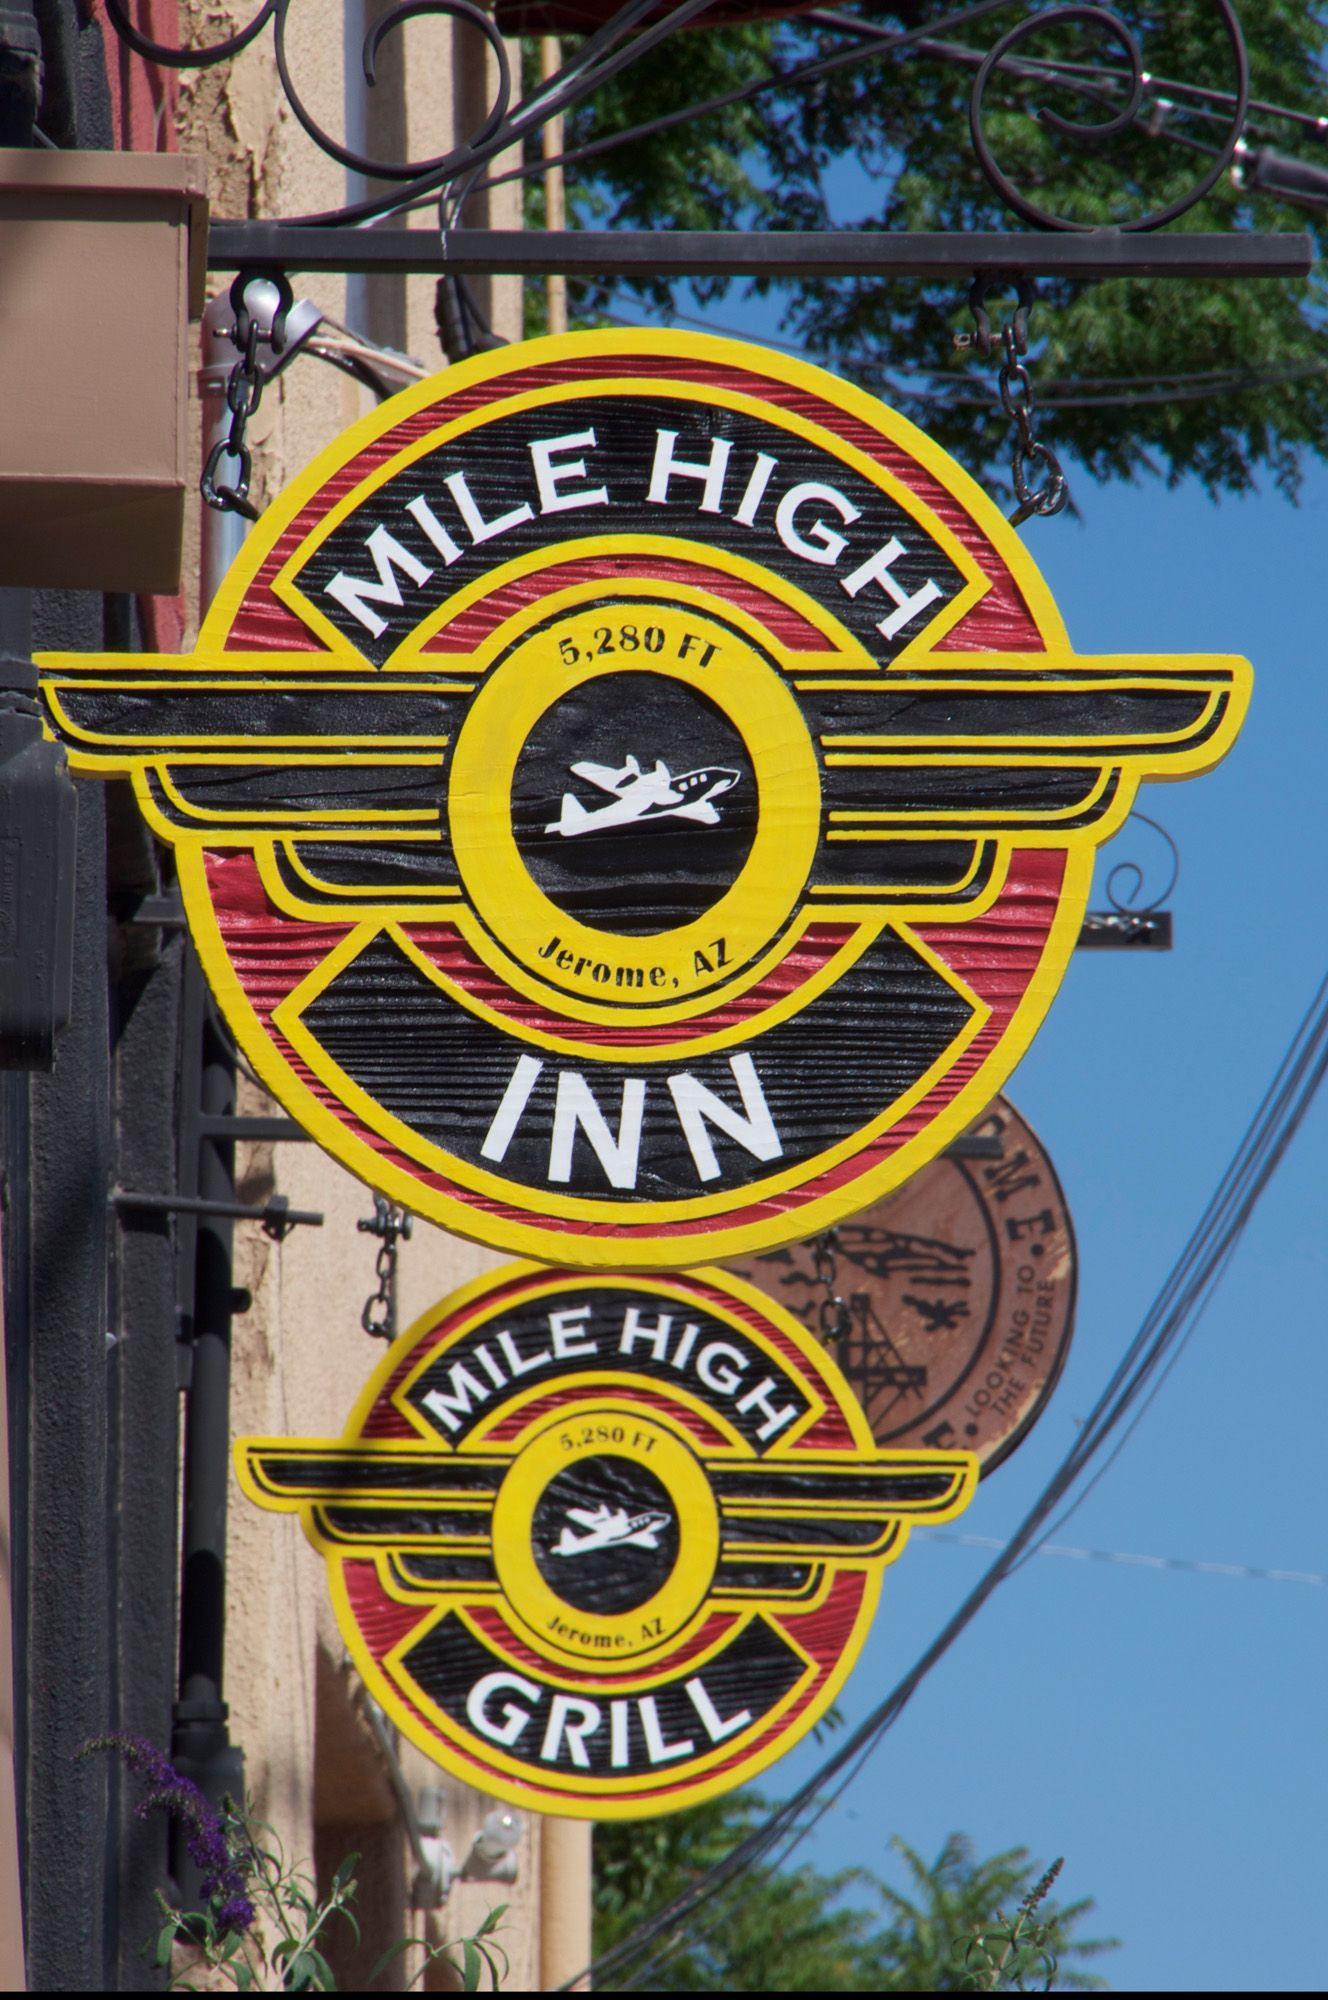 It's a trifecta at the Mile High Grill and Inn eat